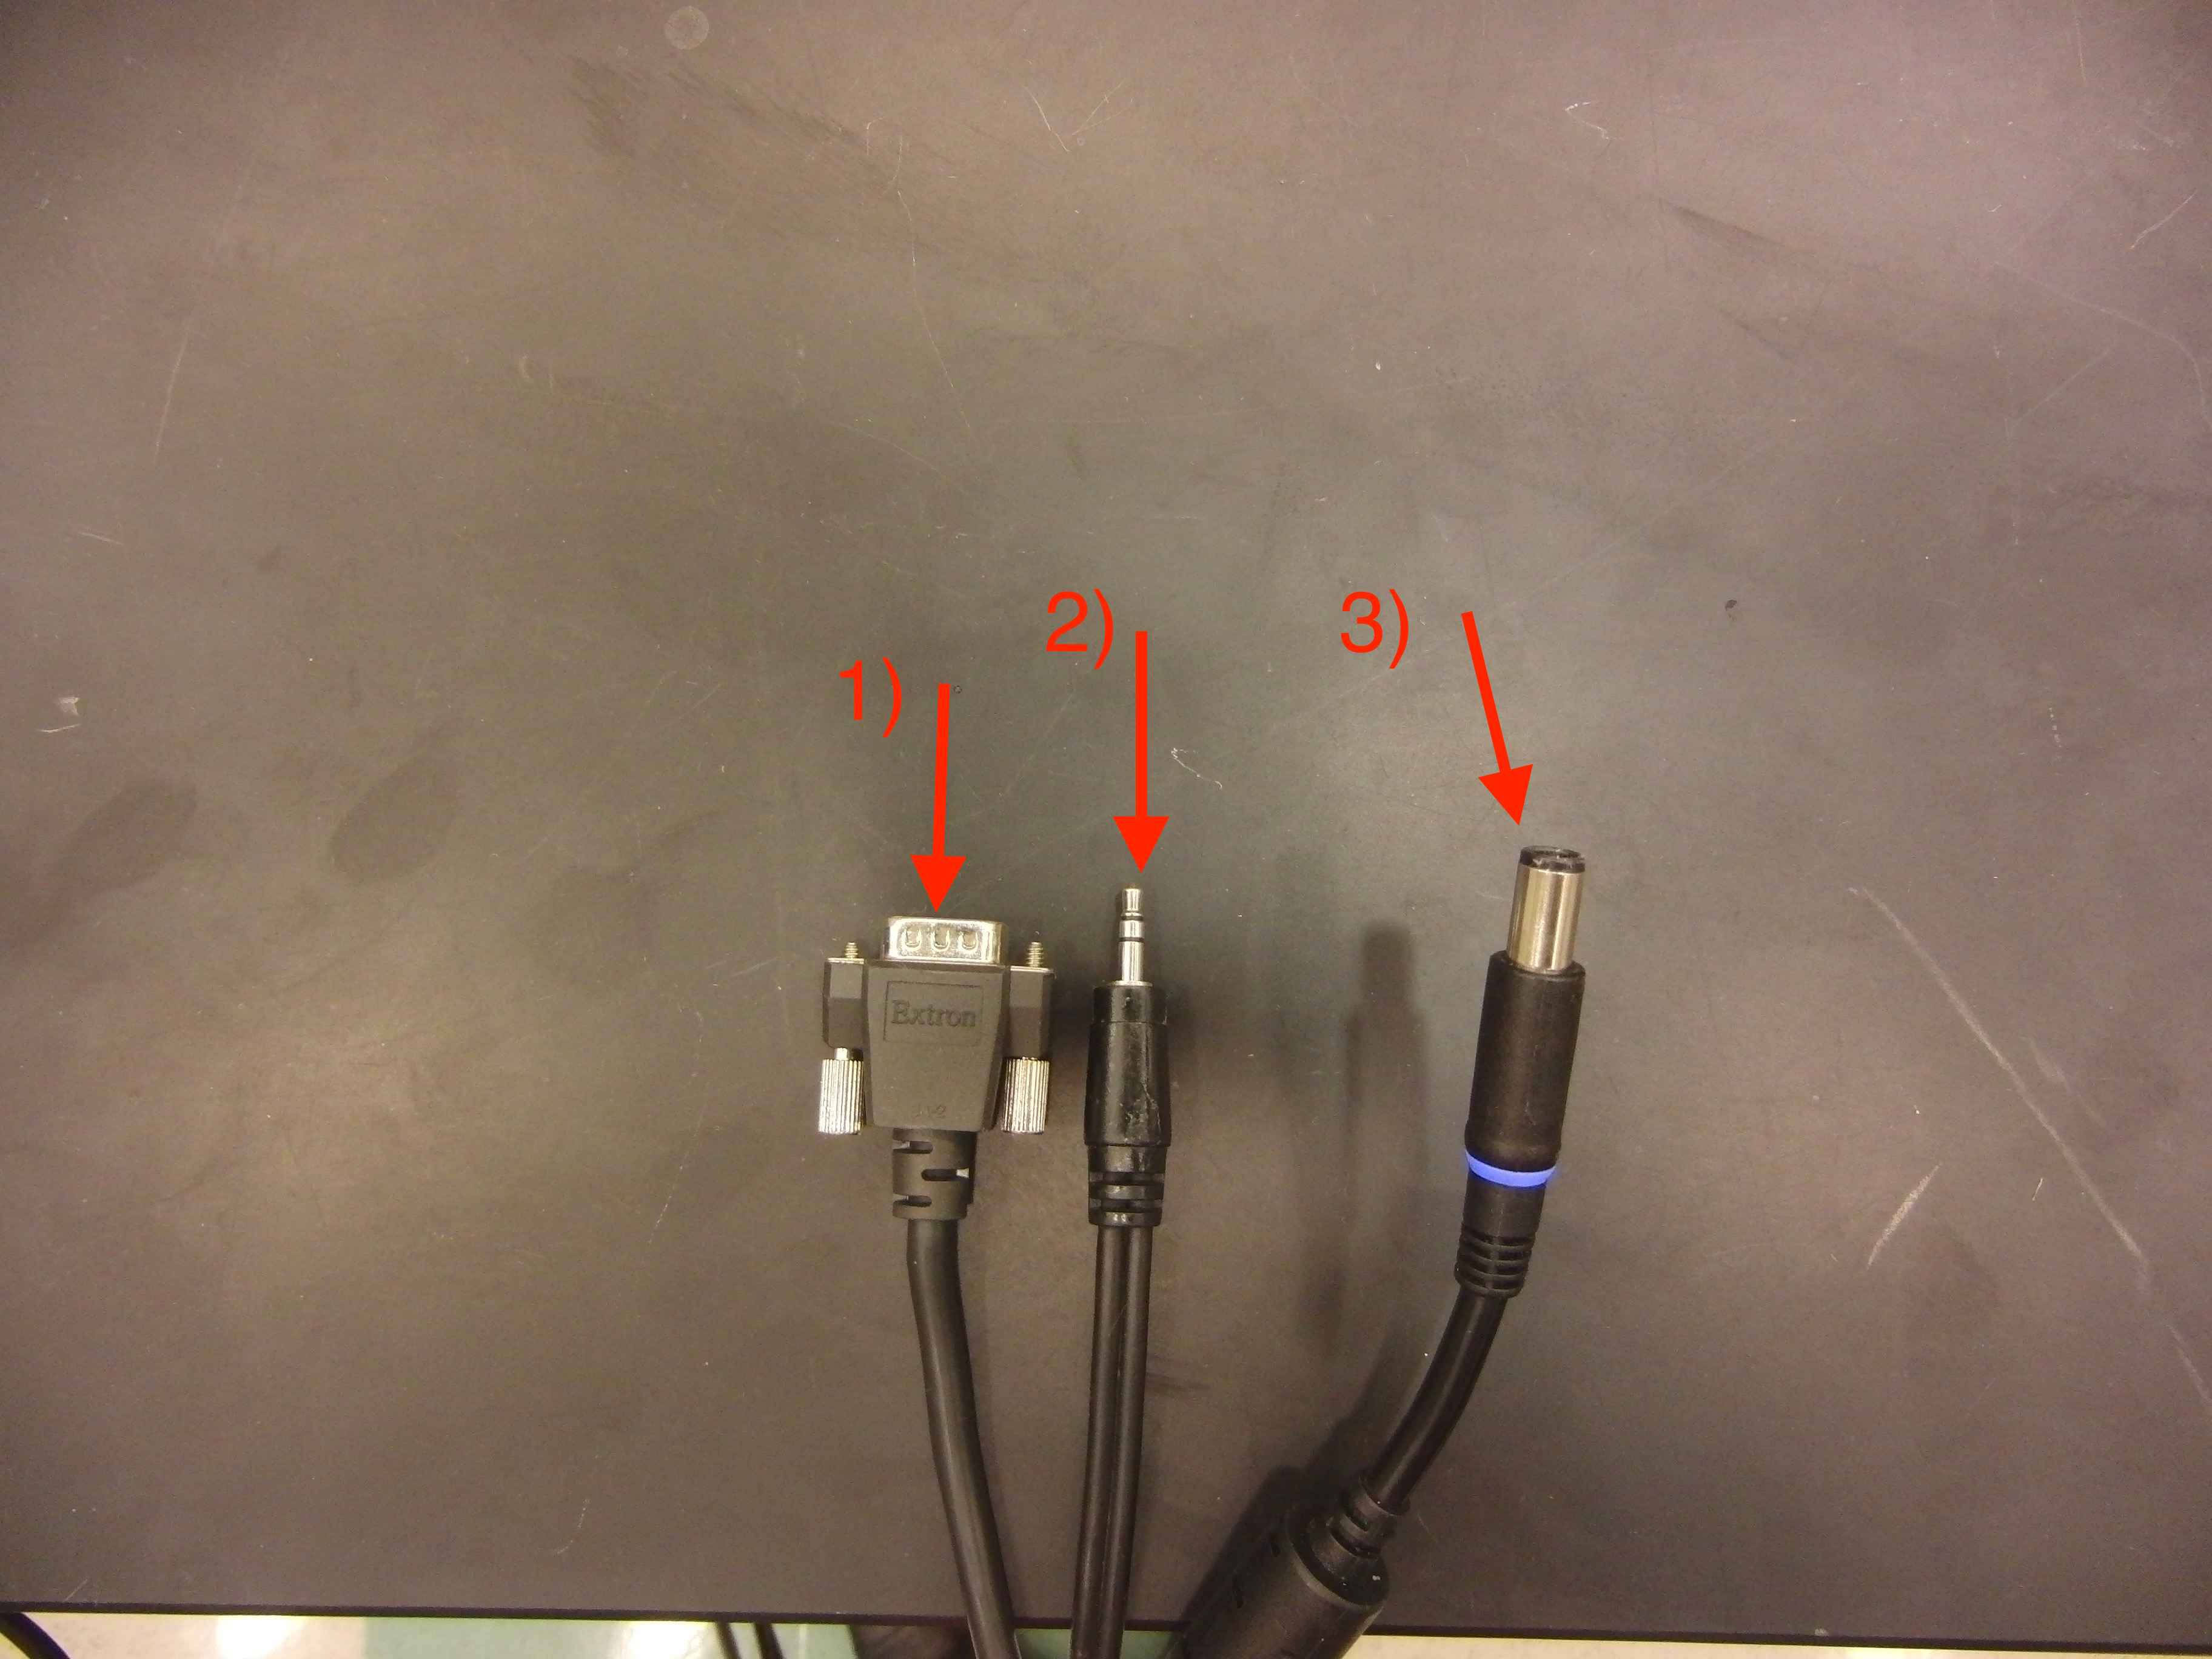 Photo of the available cable connections for audio, vga, and power identified by number